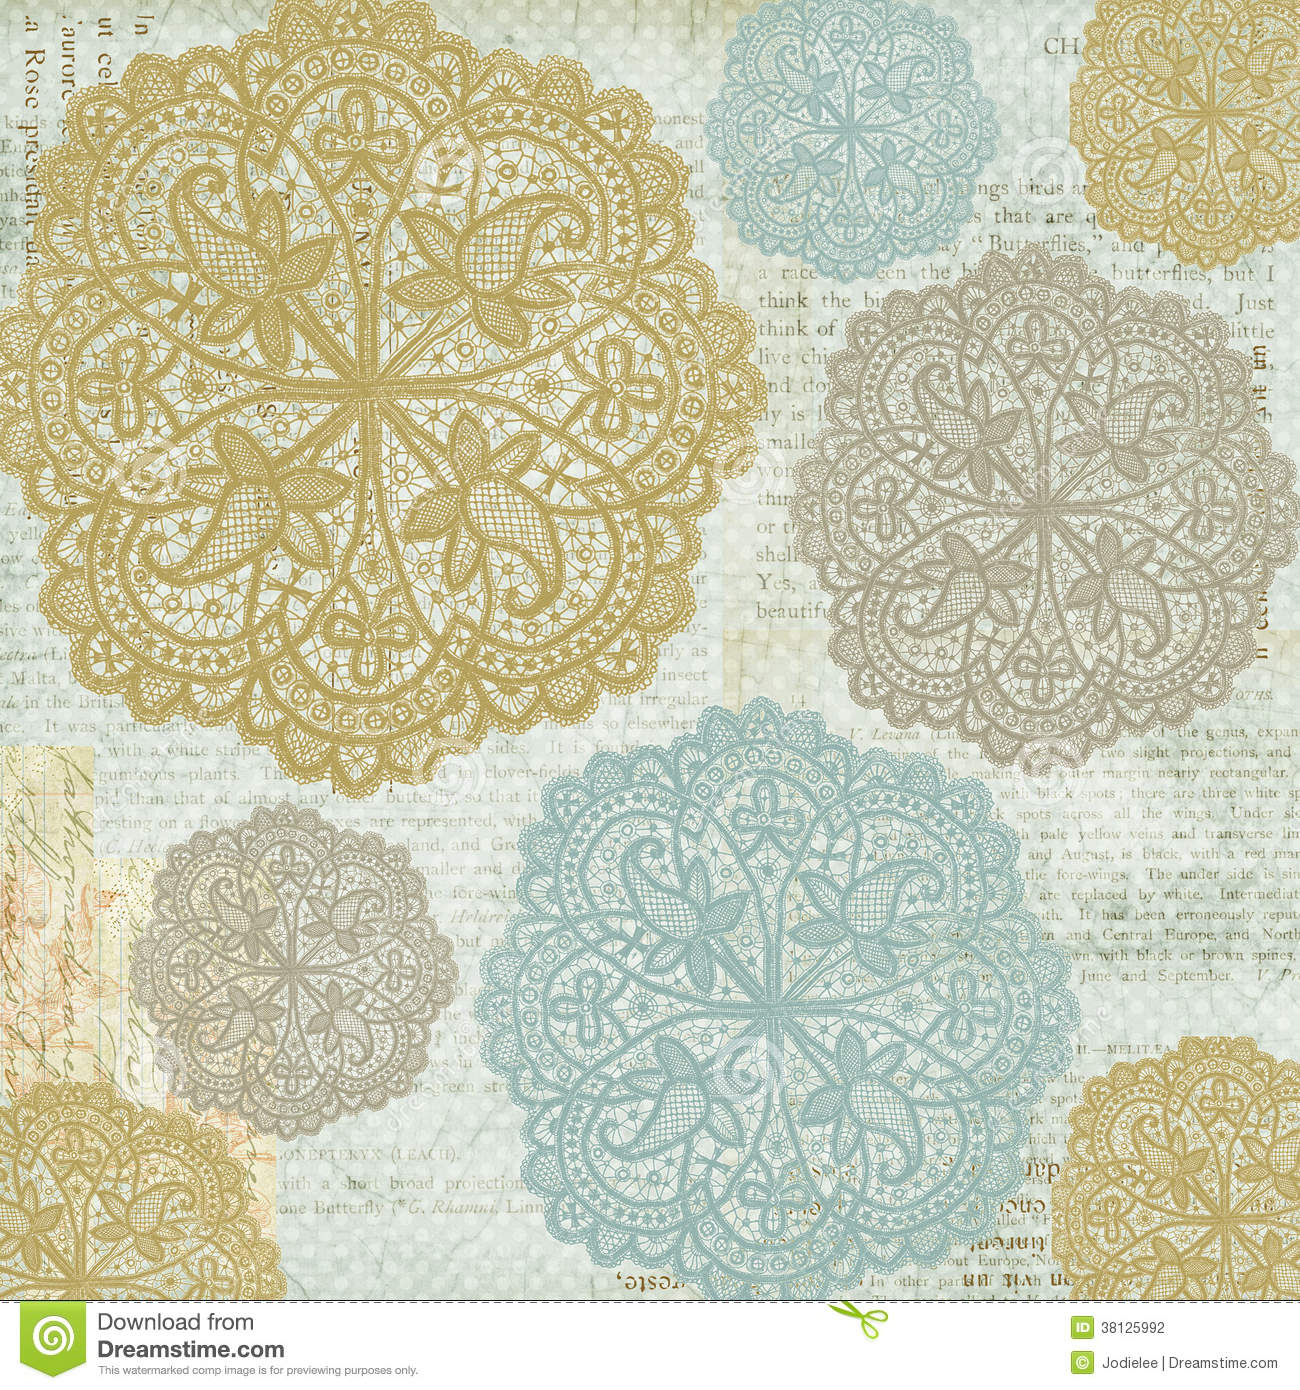 Antique Vintage shabby chic style lace patterned background